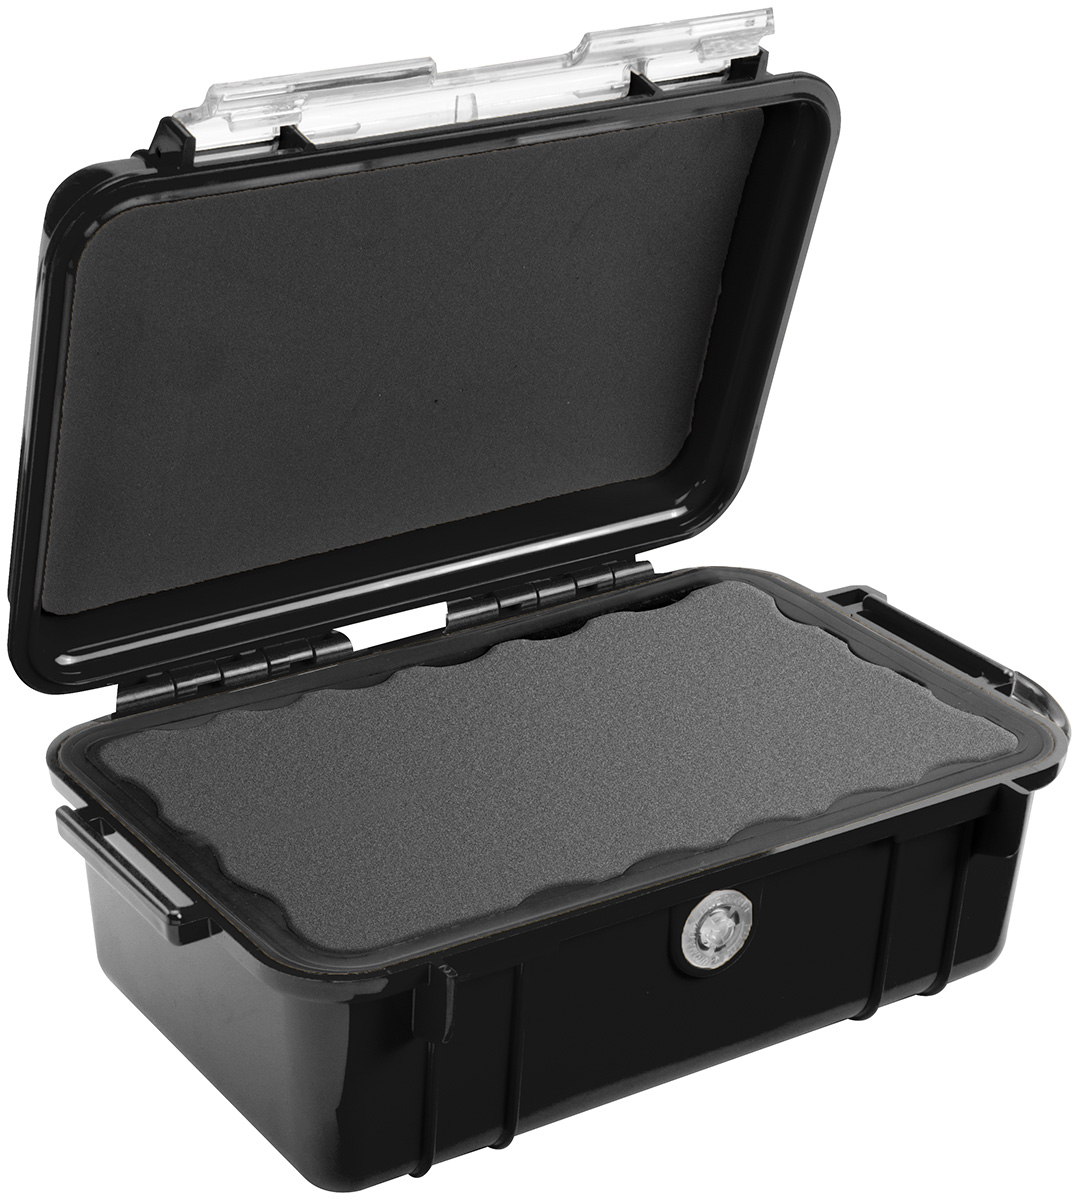 pelican peli products 1050 watertight electronics enclosure box